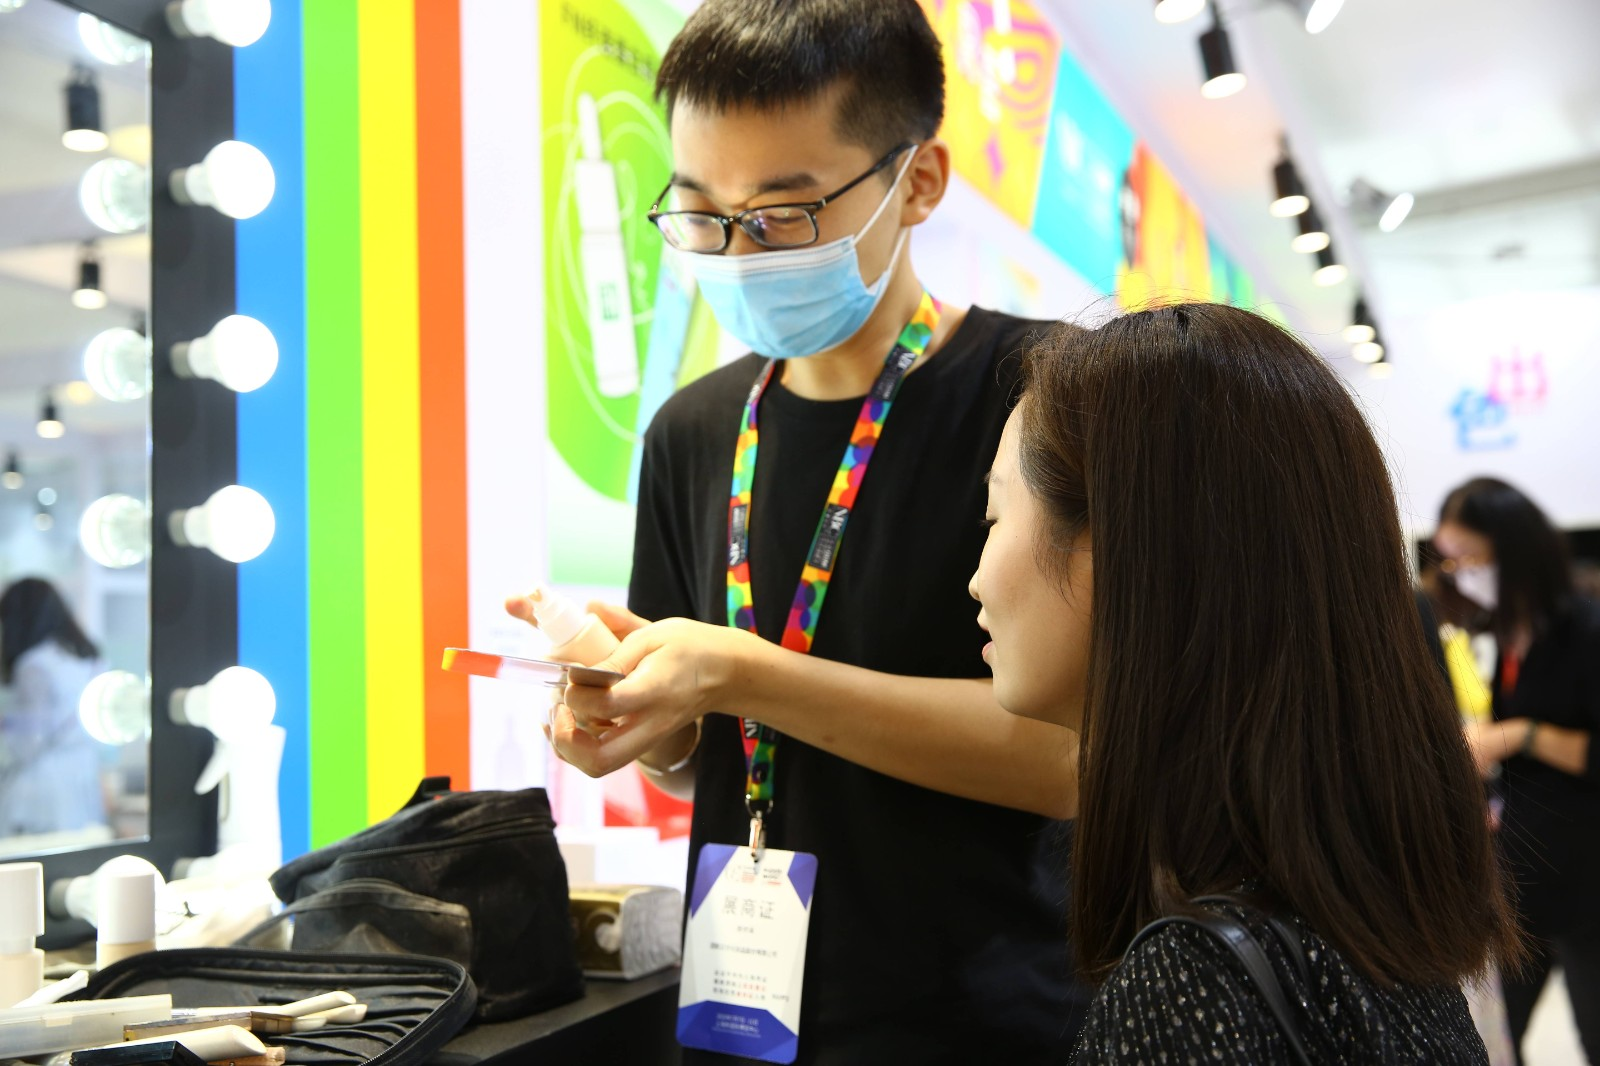 news-Pure Beauty | NBC at the China Beauty Expo 2020 with Seven New Product Series-NOX BELLCOW-img-3